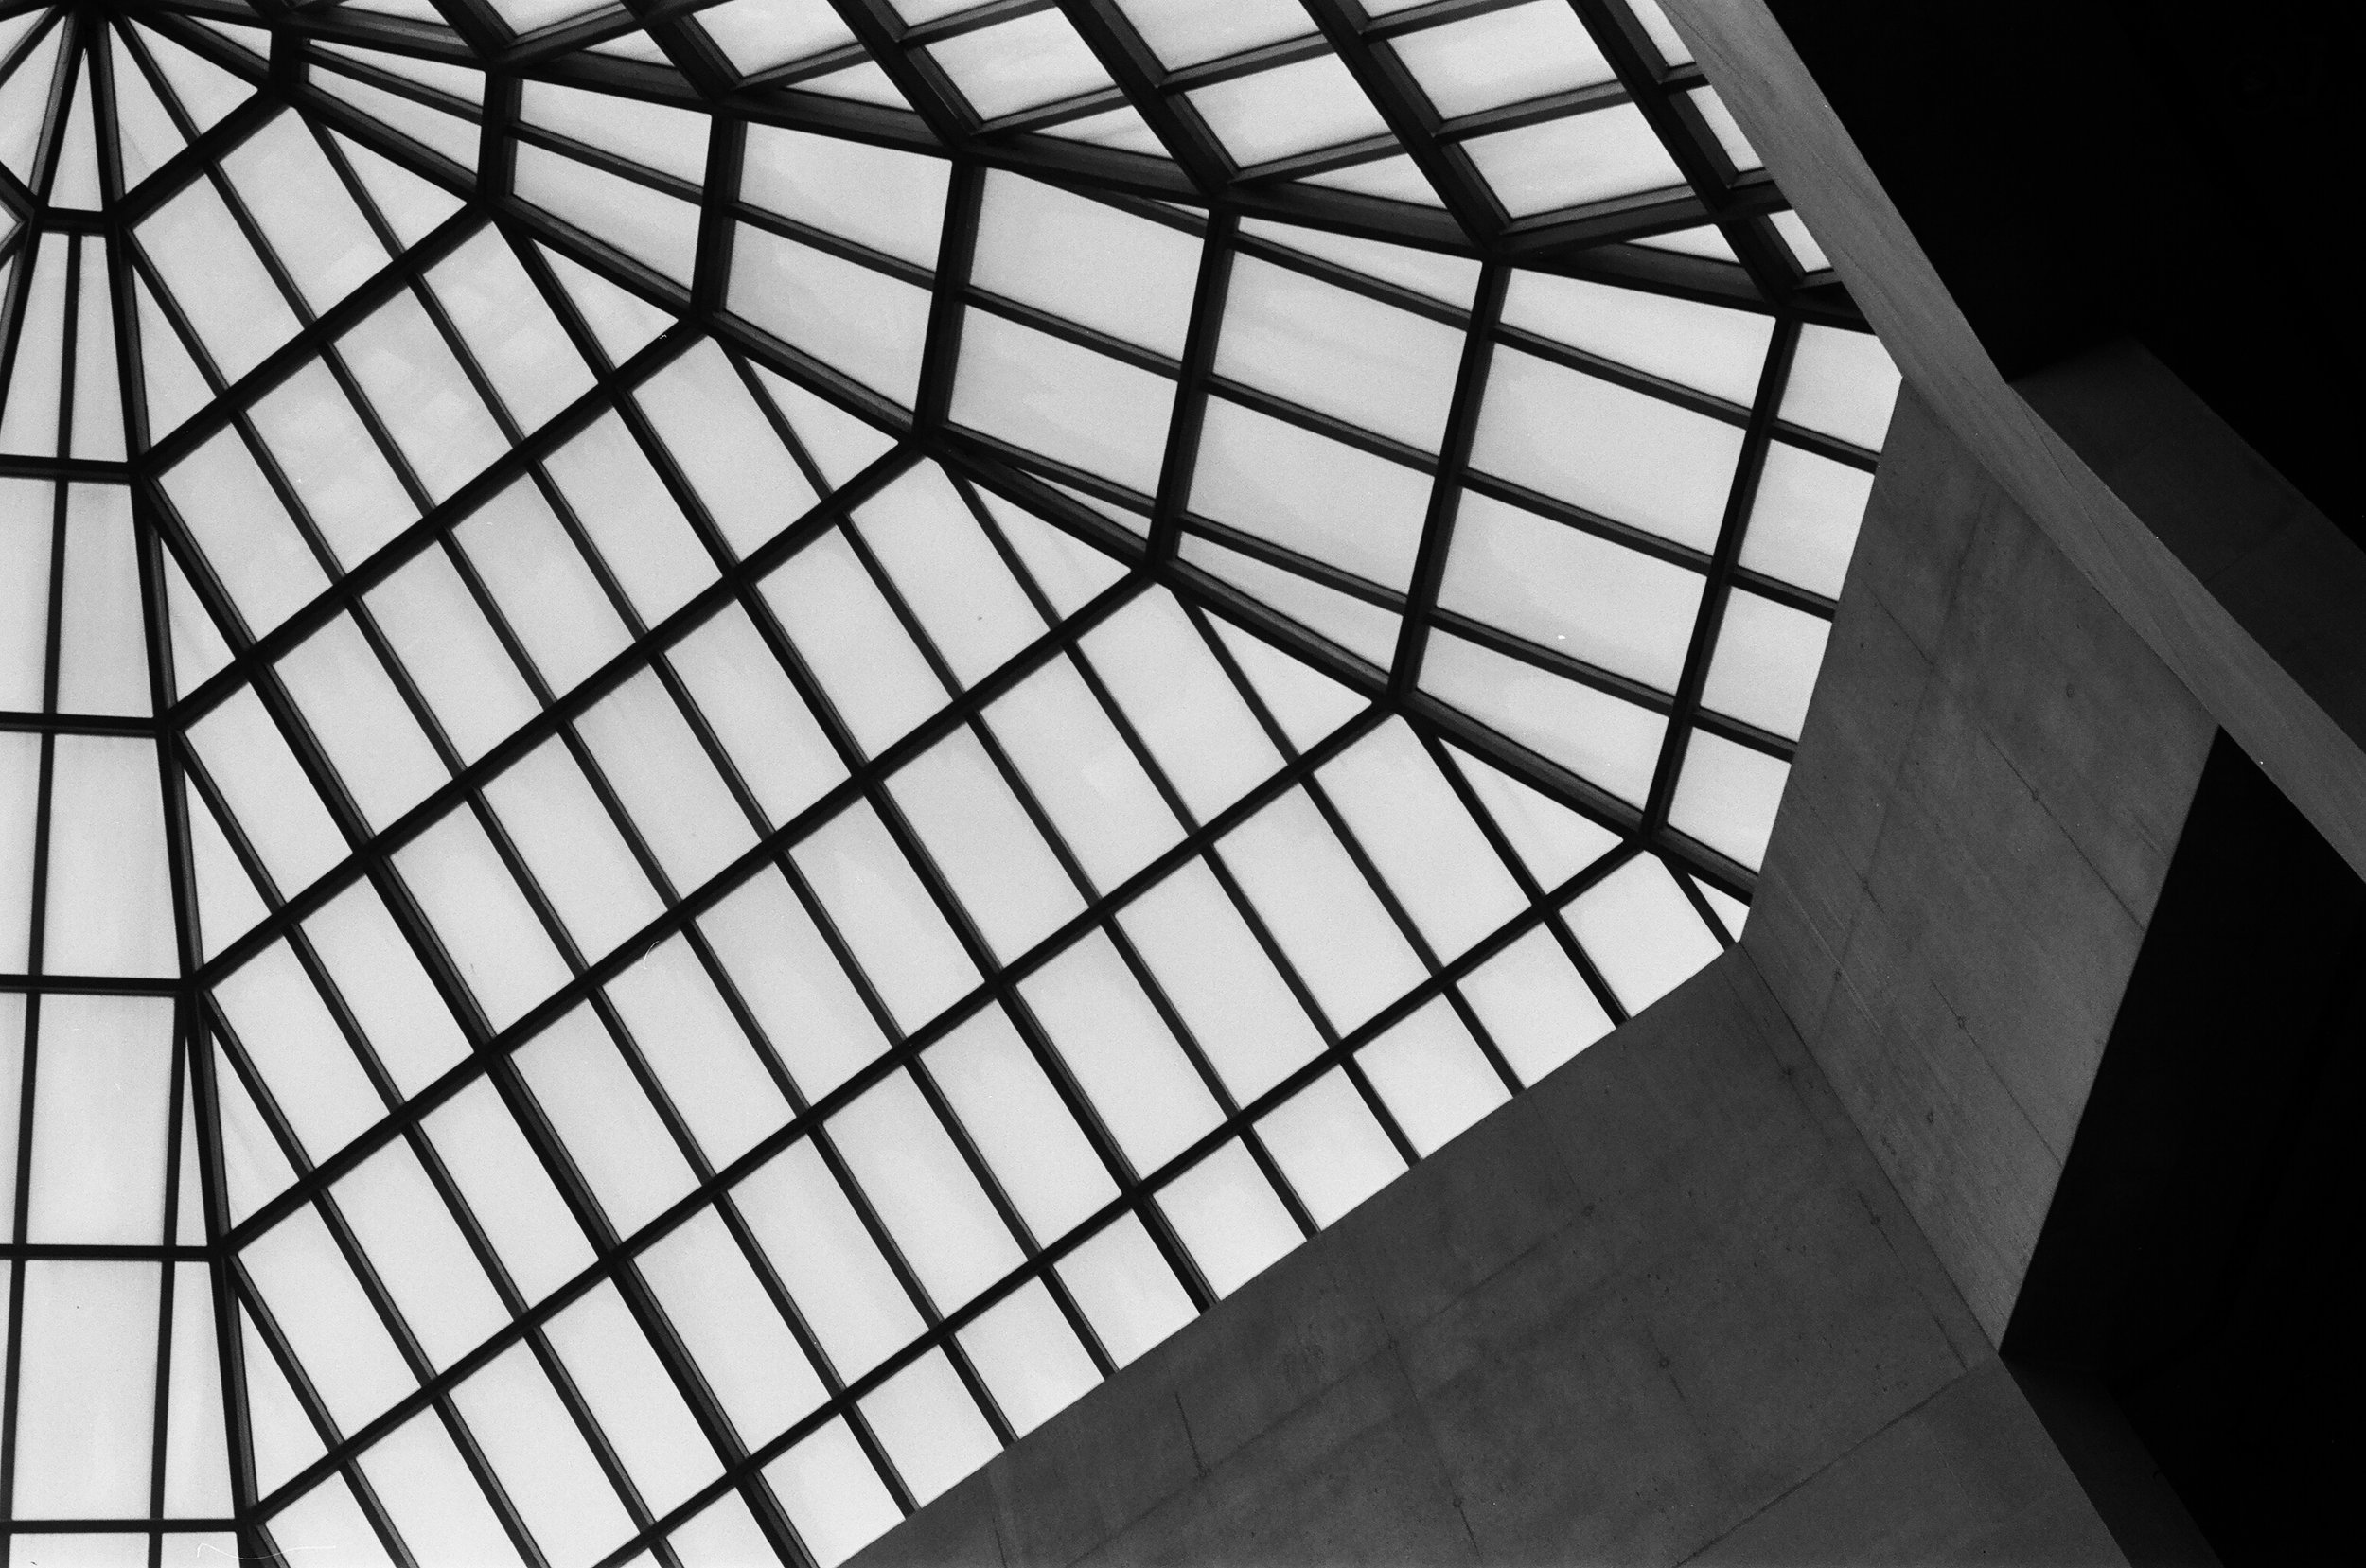 Lehman Wing @ the Met